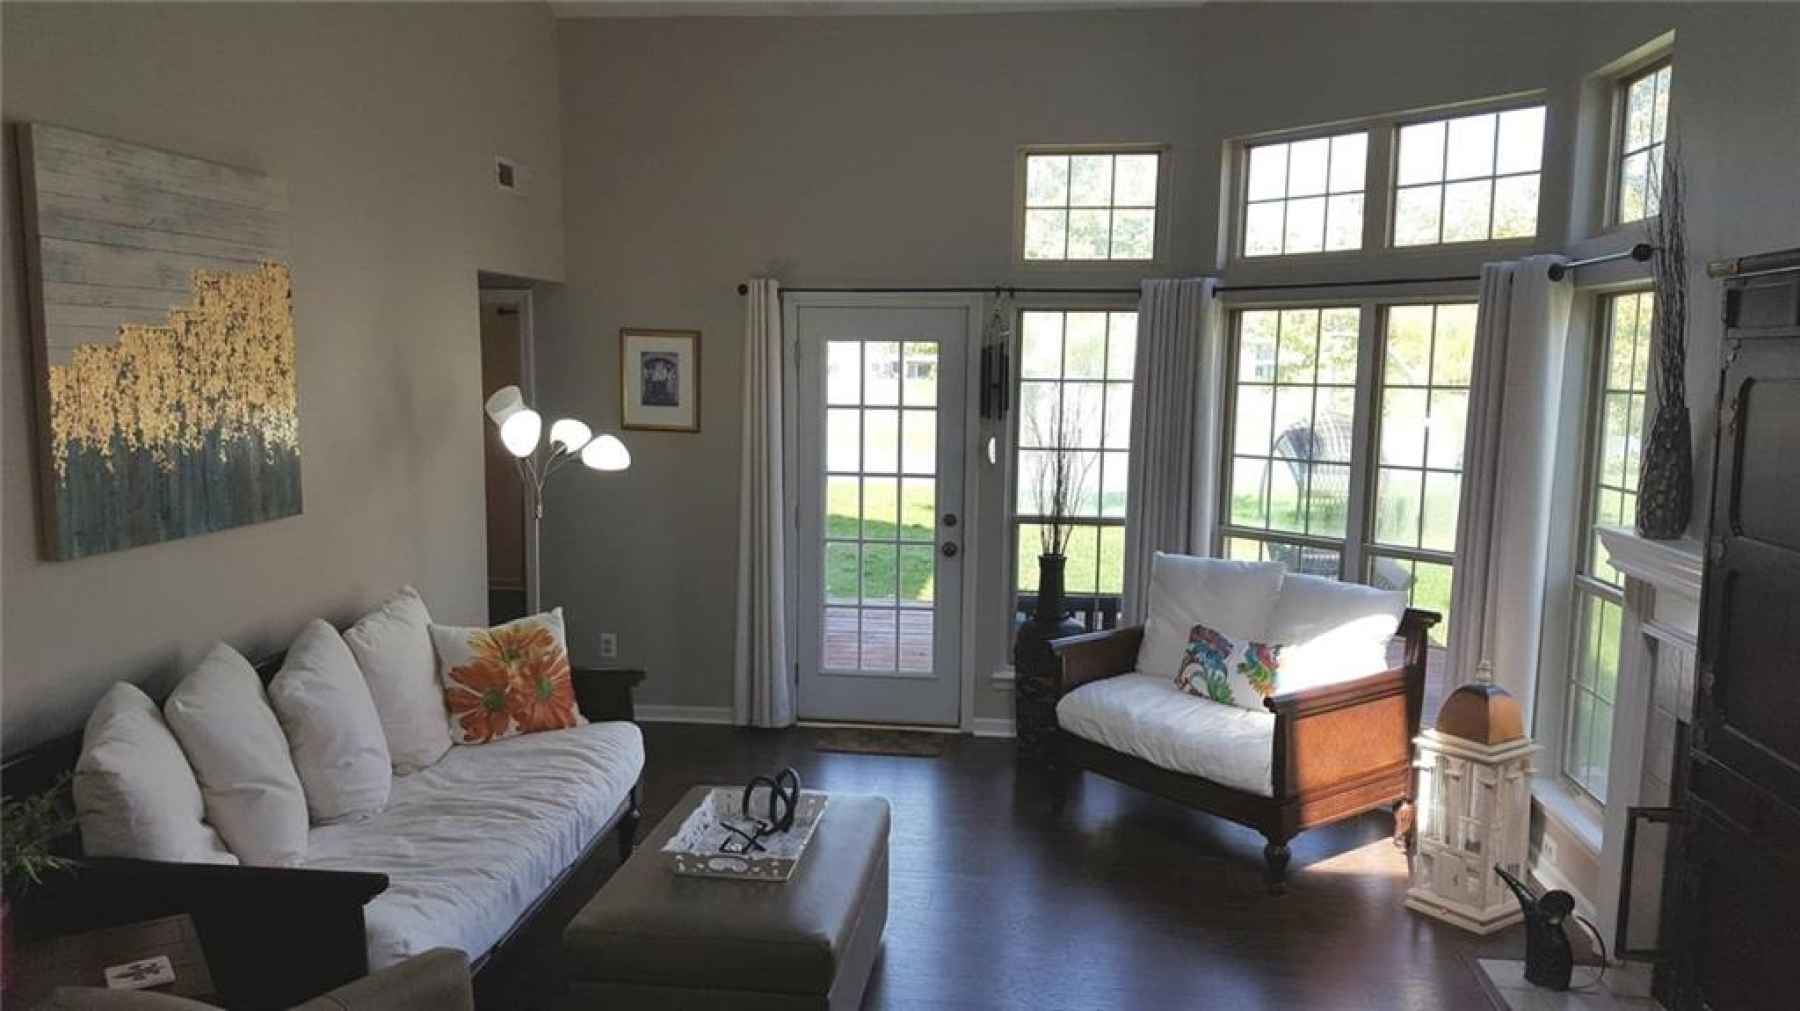 Lakeside living at it's best in this 'light and bright' Family Room with new windows, wood-laminate